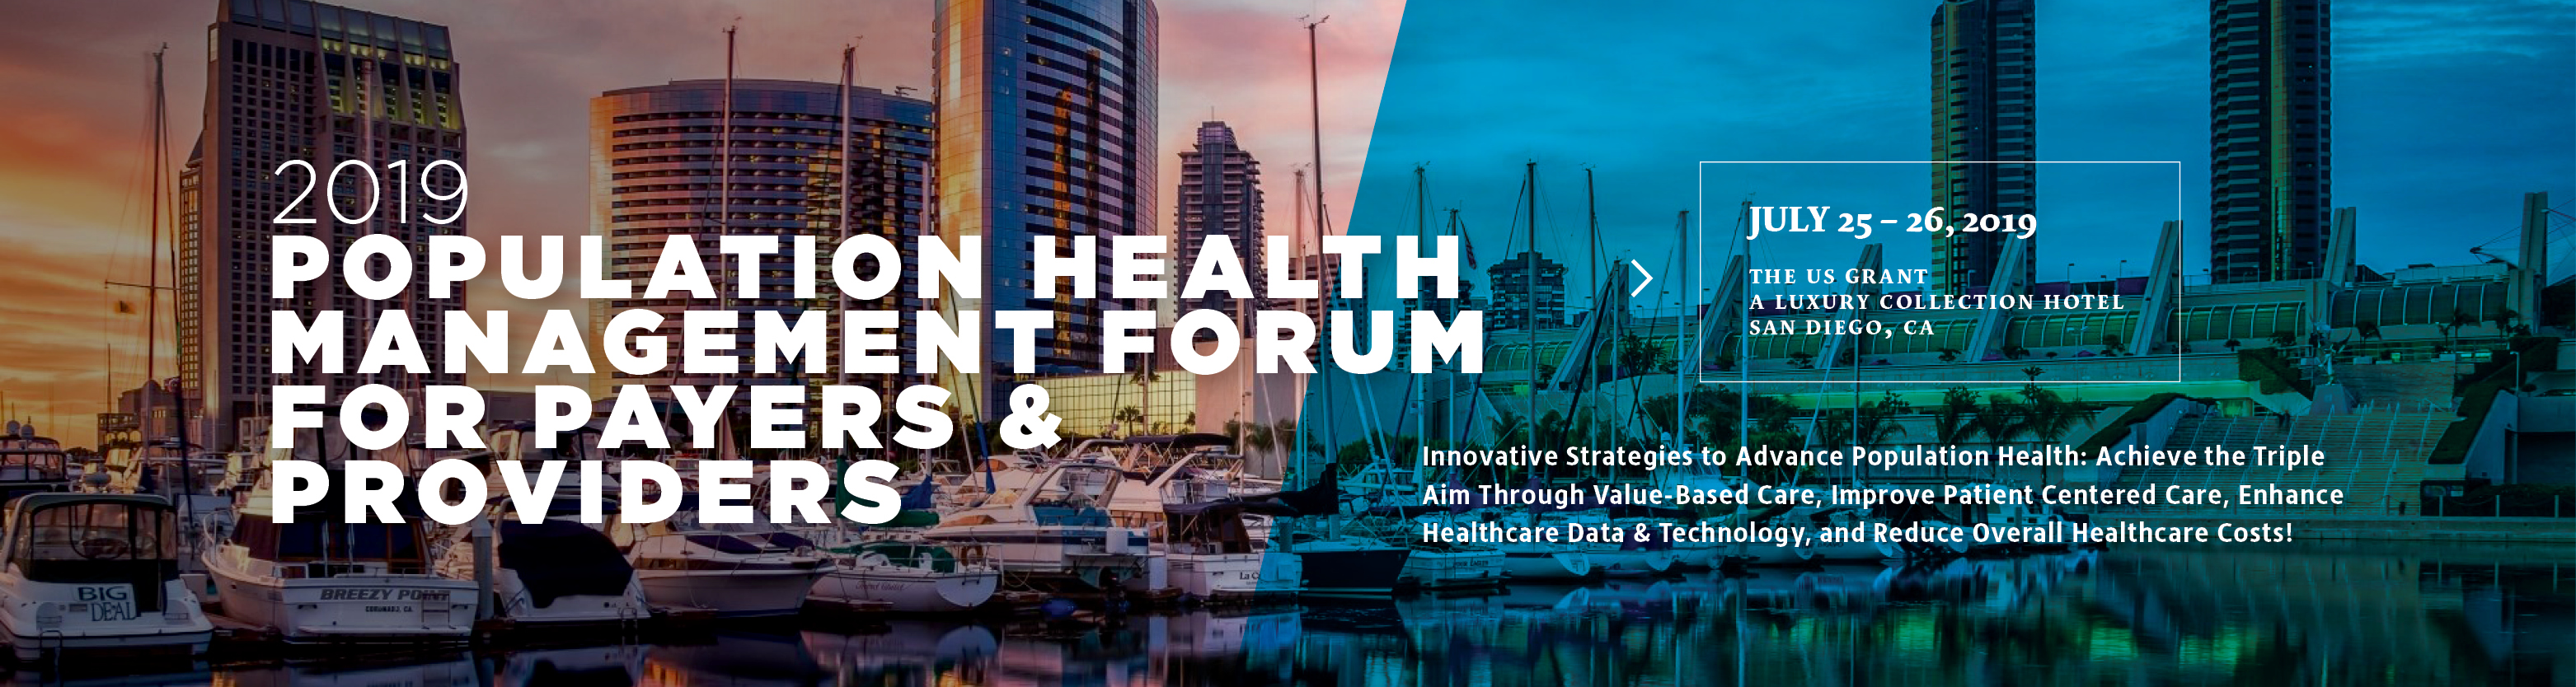 2019 Population Health Management Forum for Payers & Providers